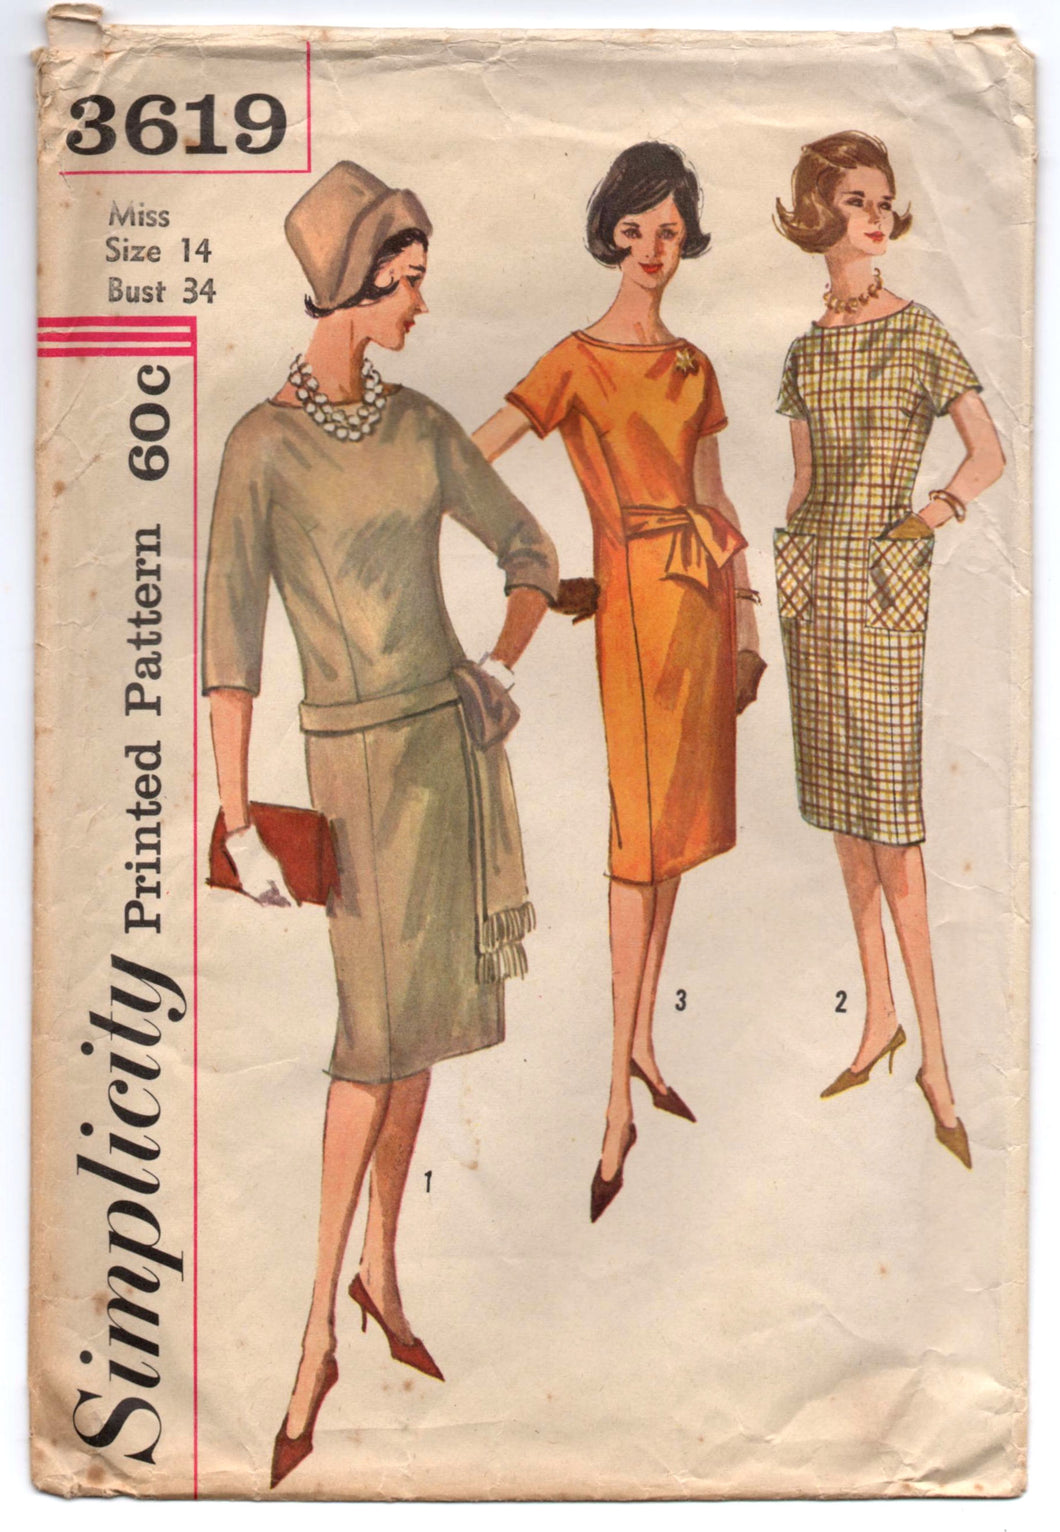 1960's Simplicity Sheath Dress with Sash and Pockets Pattern - Bust 34